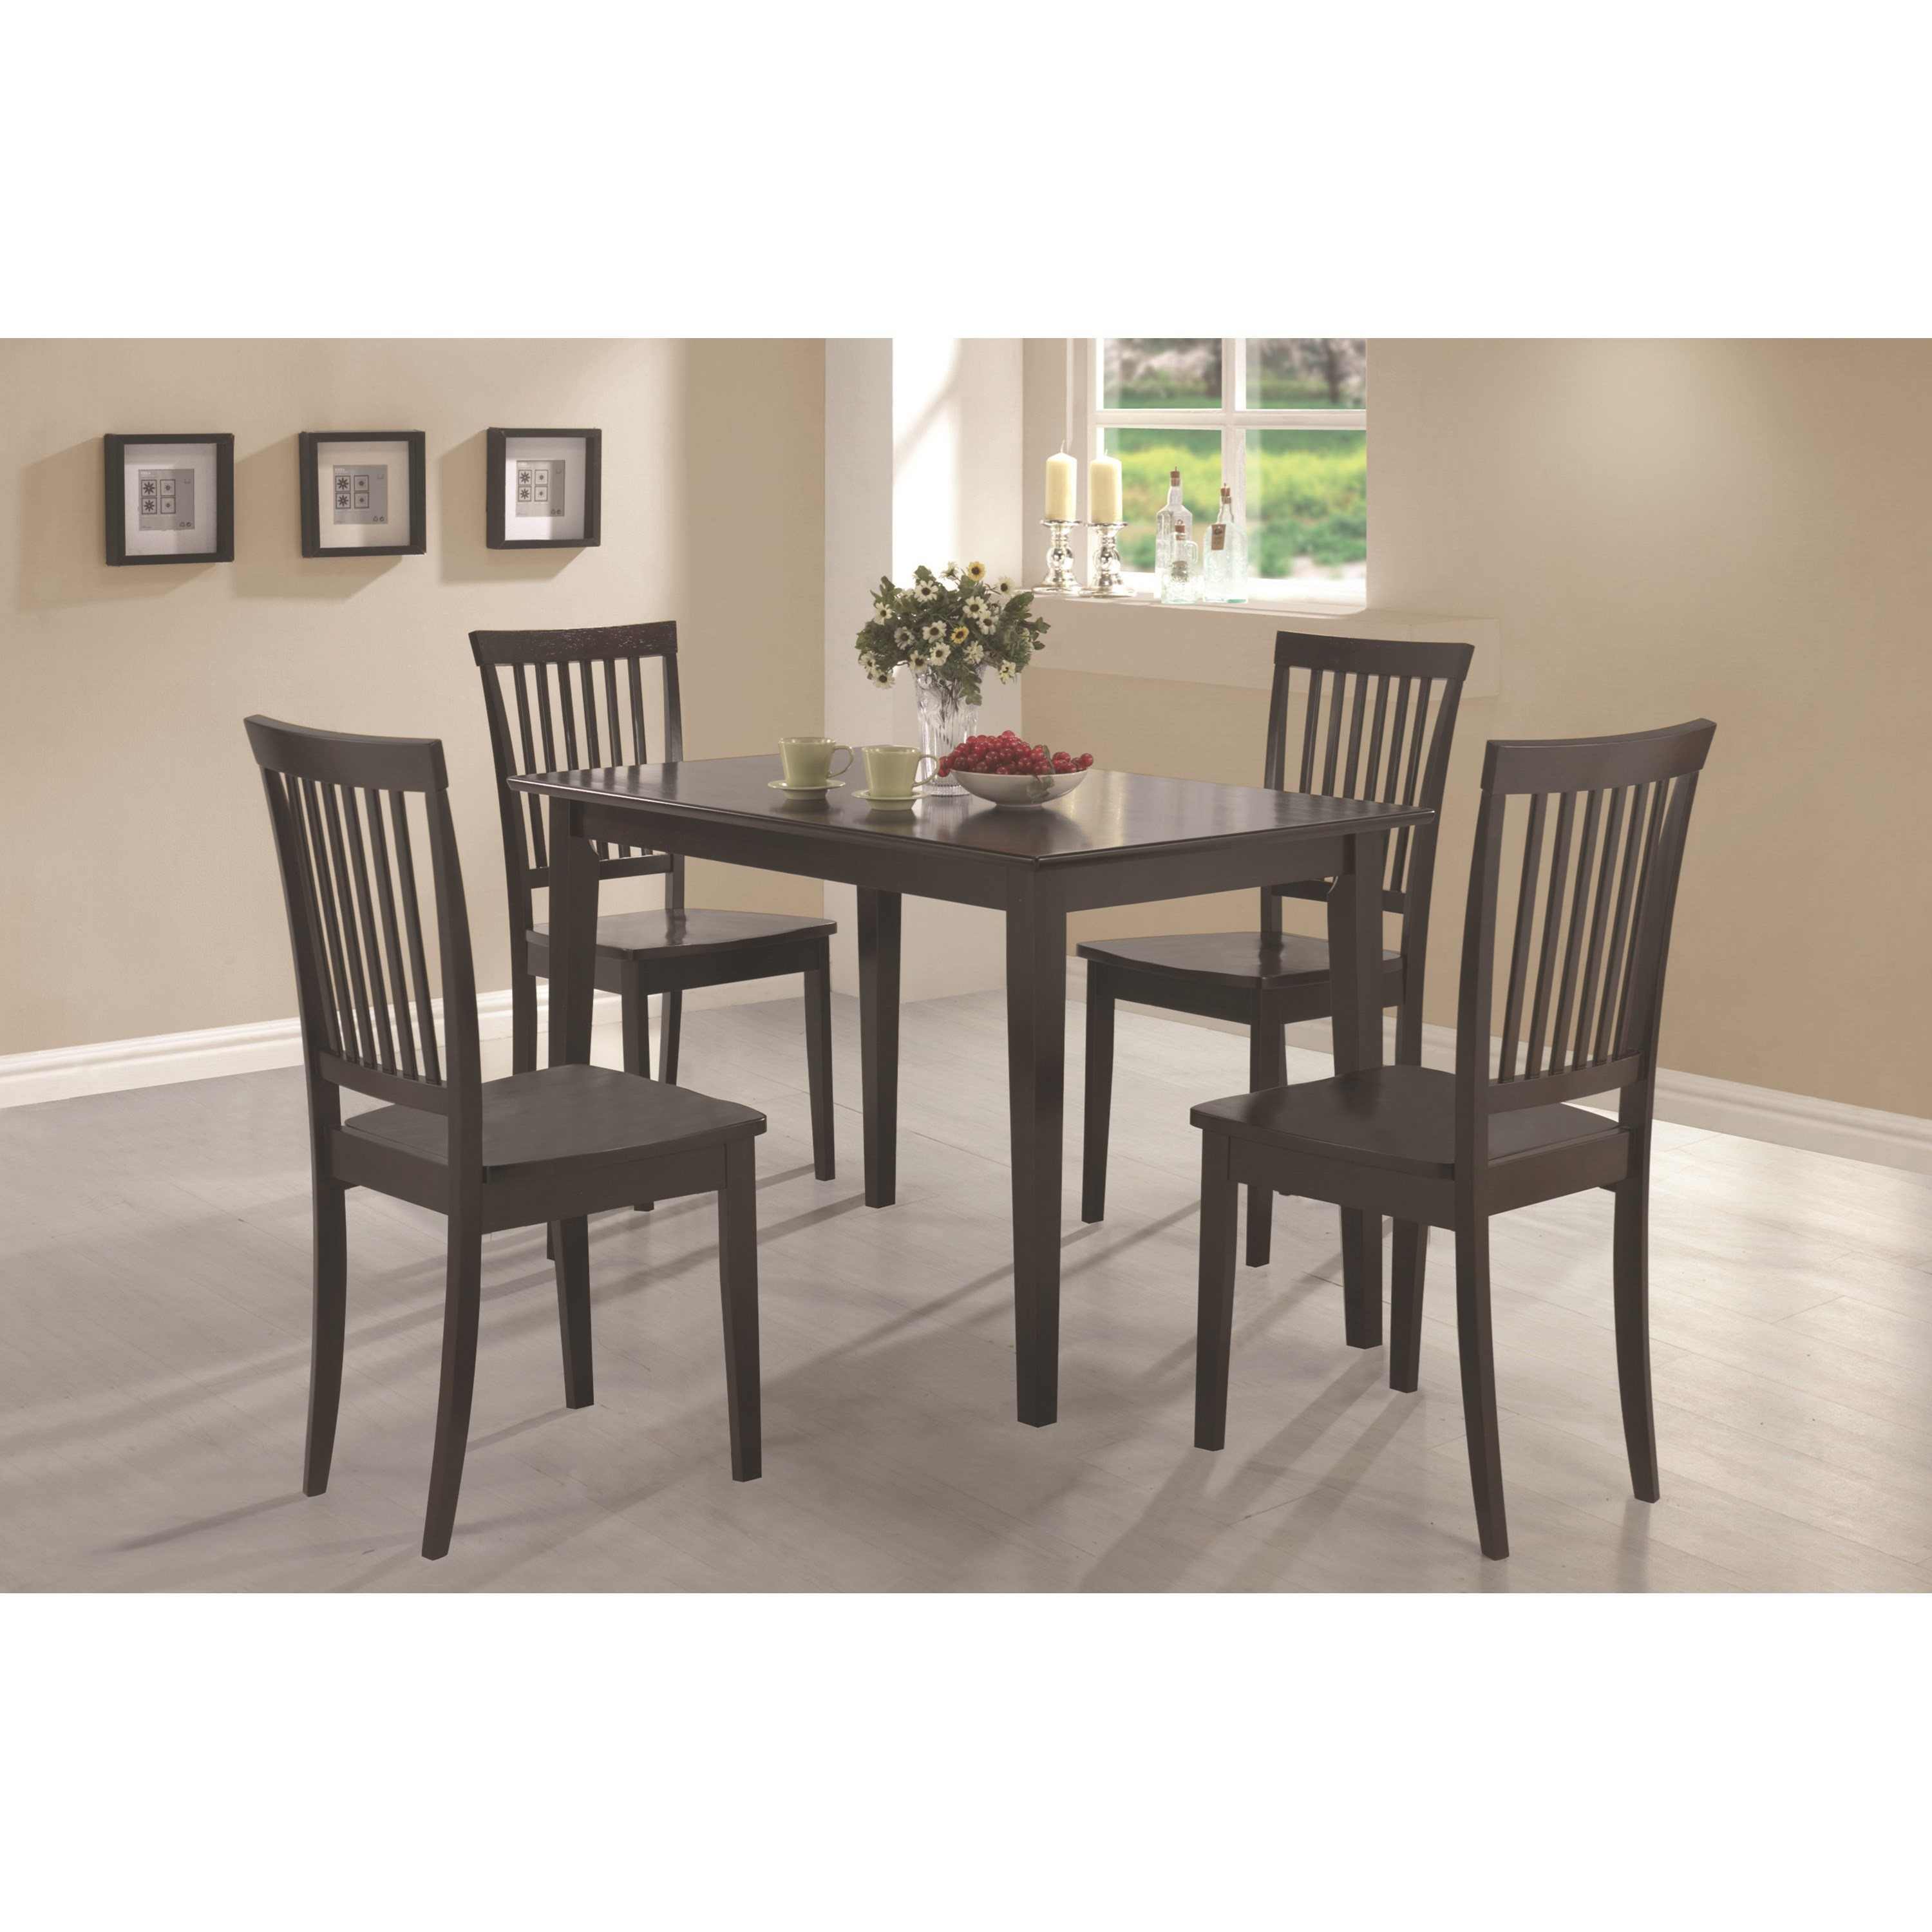 Coaster Oakdale 5 Piece Dining Set - Item Number: 150152